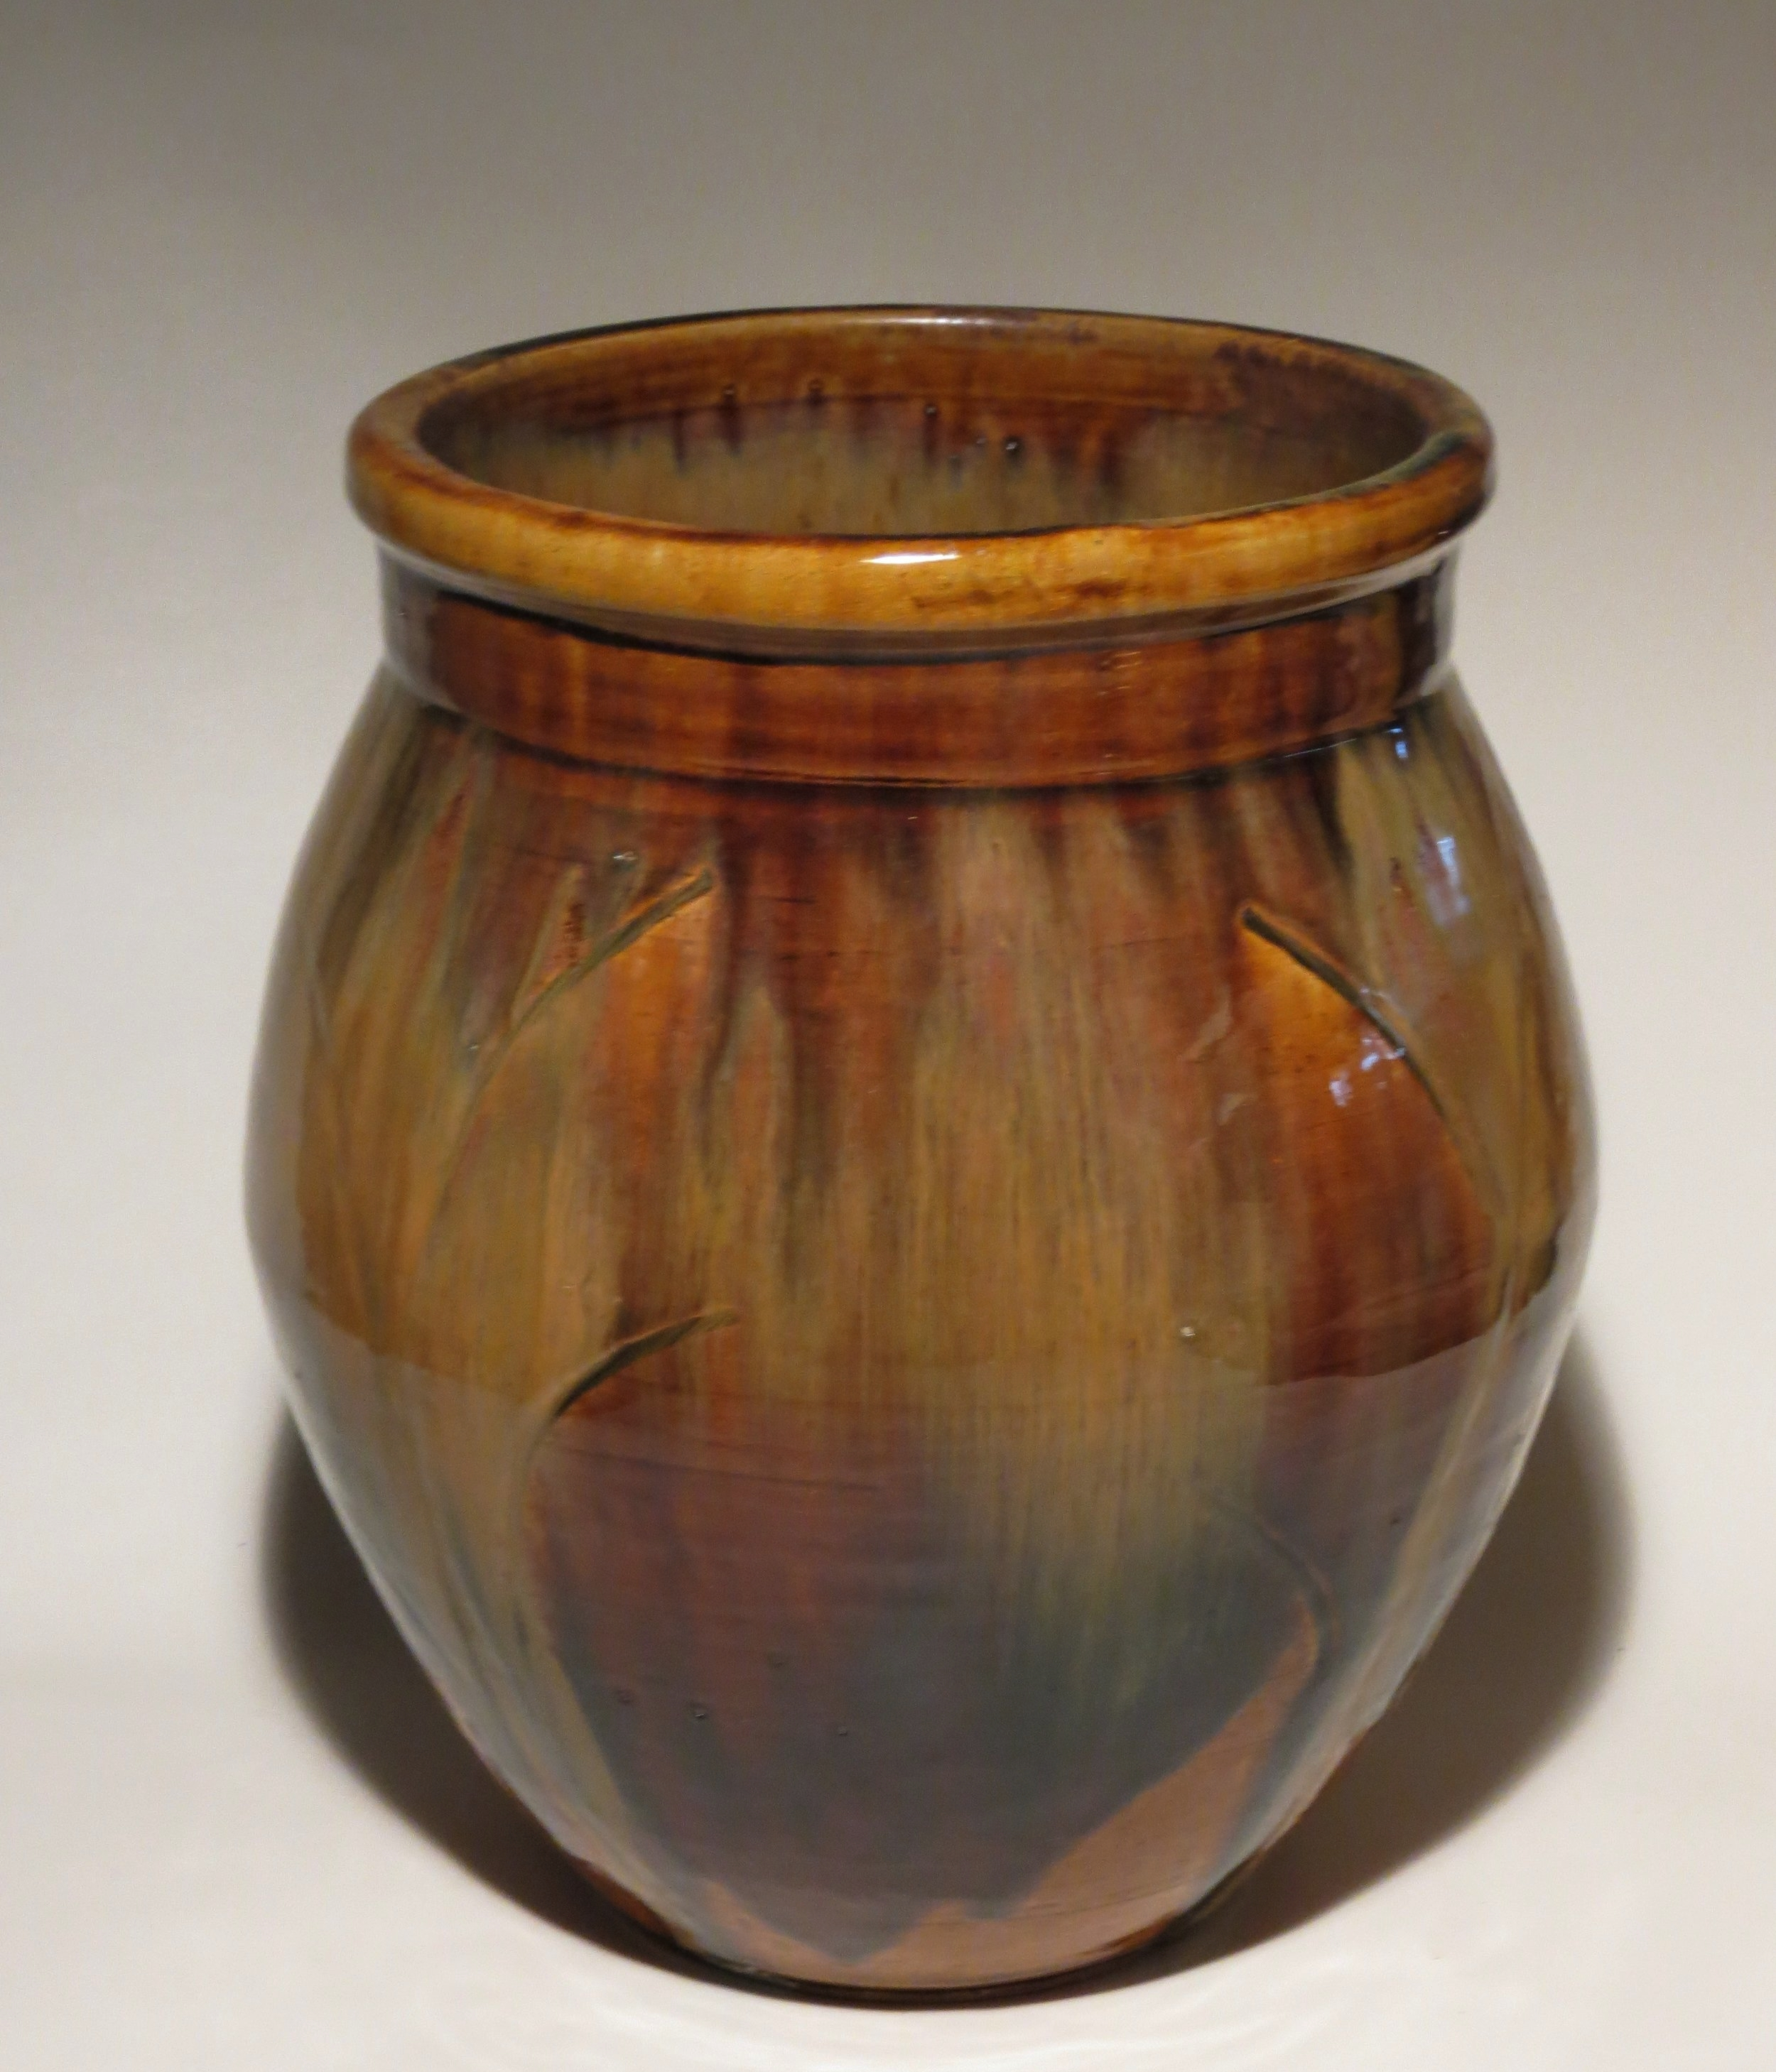 "Wood-fired stoneware planter. Tenmoku glaze with iron/rutile wash. 10x13""."